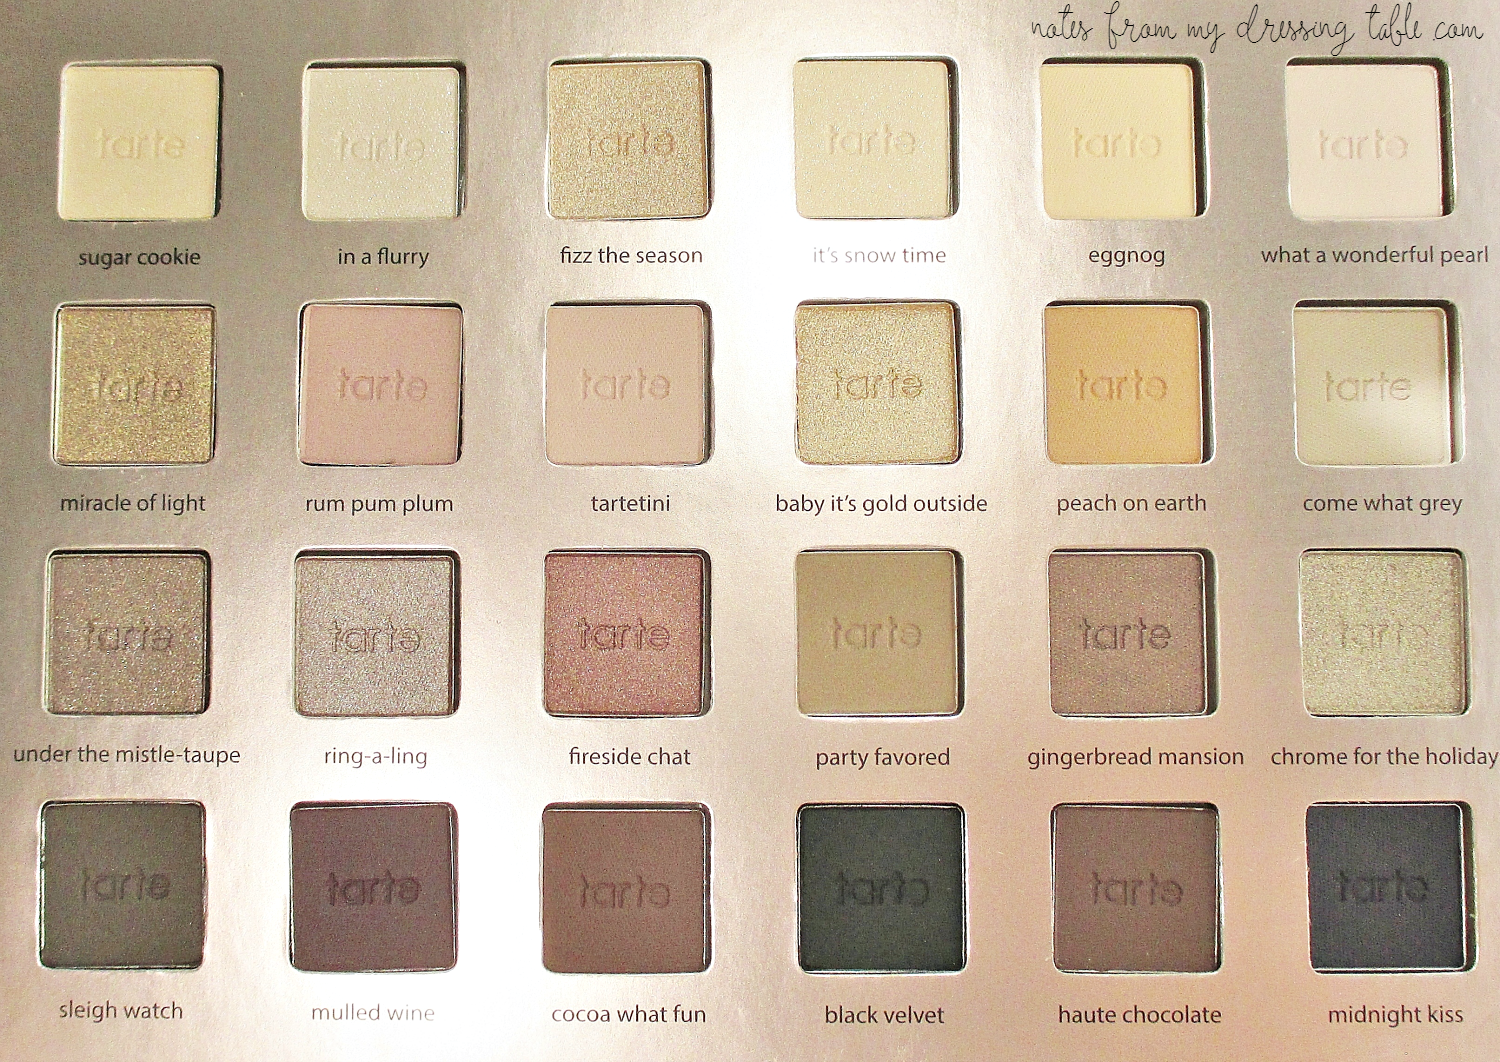 Tarte Light of the Party Collectors Makeup Case Twenty Four Eye Shadows notesfrommydressingtable.com